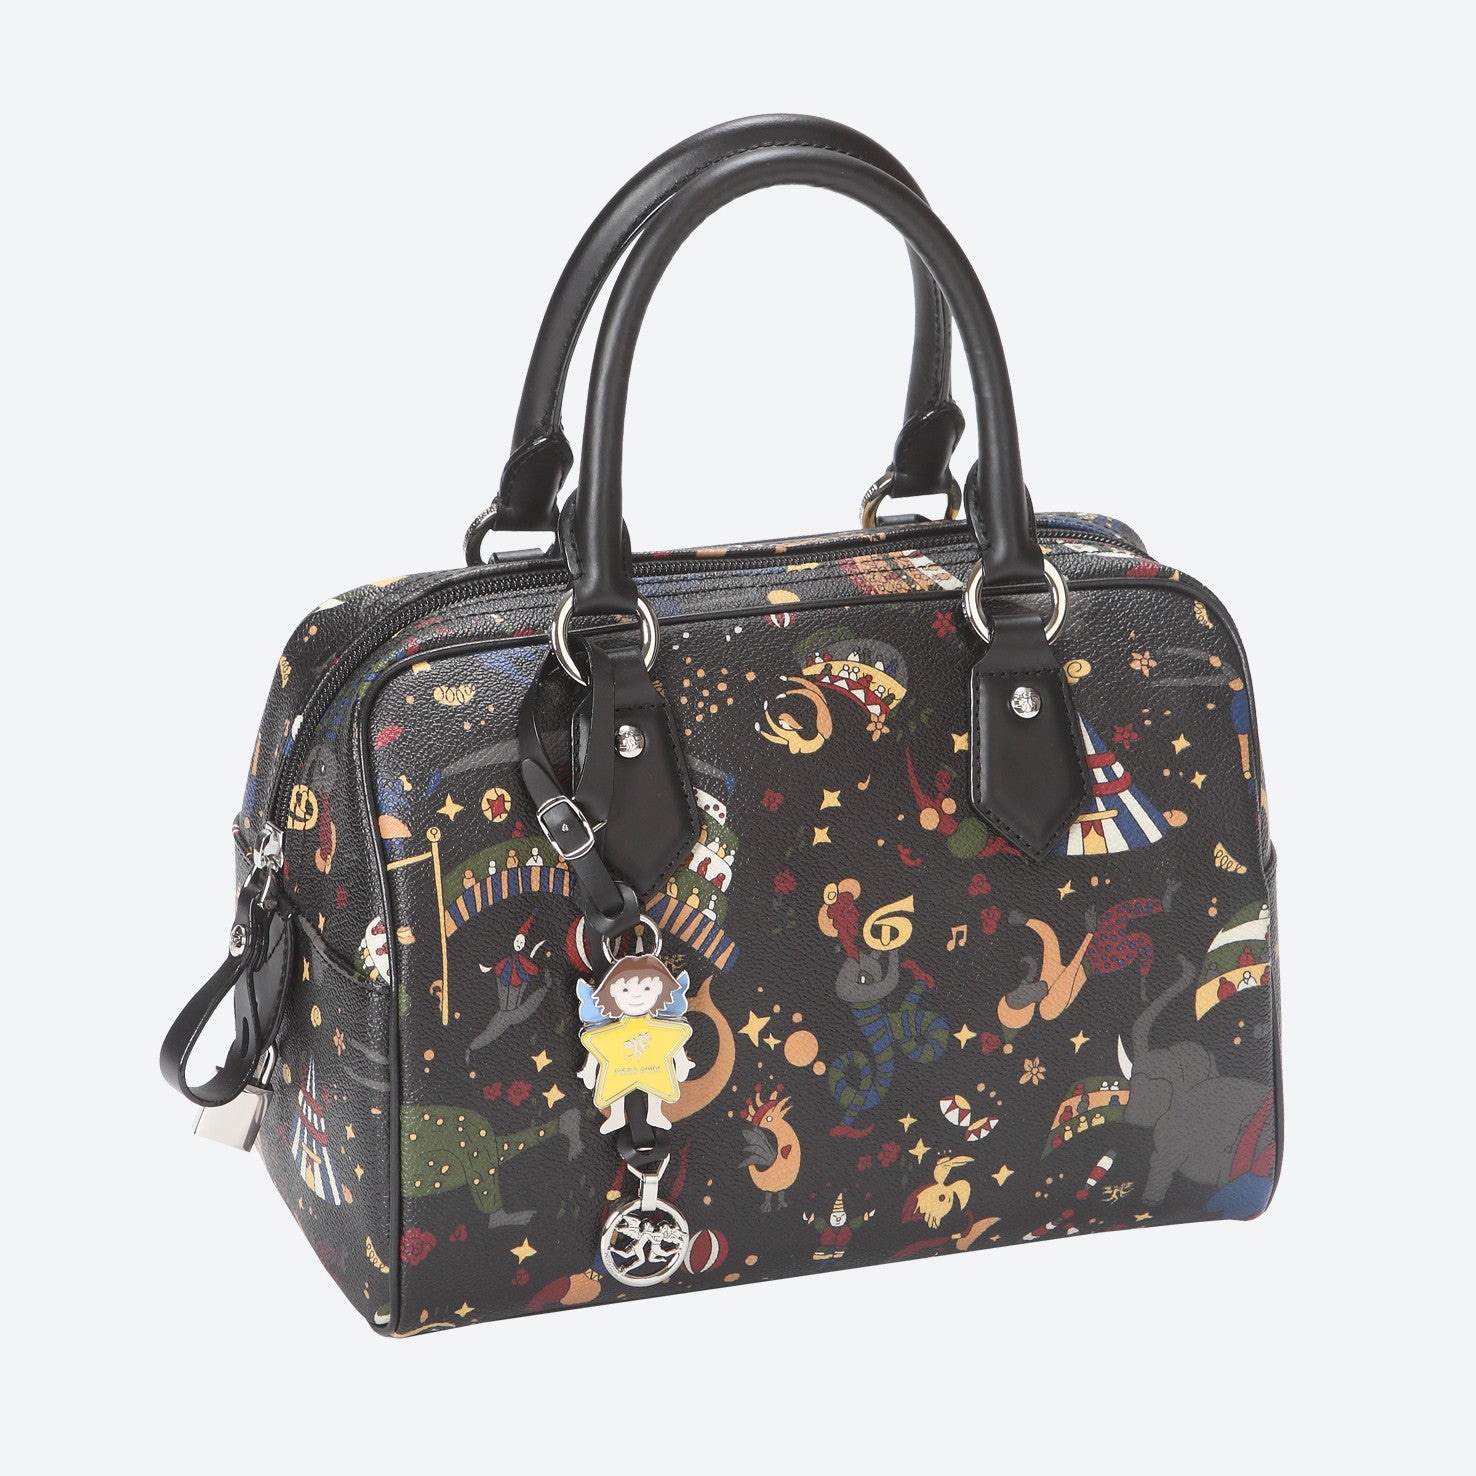 Piero Guidi Magic Circus - 9.5 x 6 x 5 in. Black or Brown Satchel